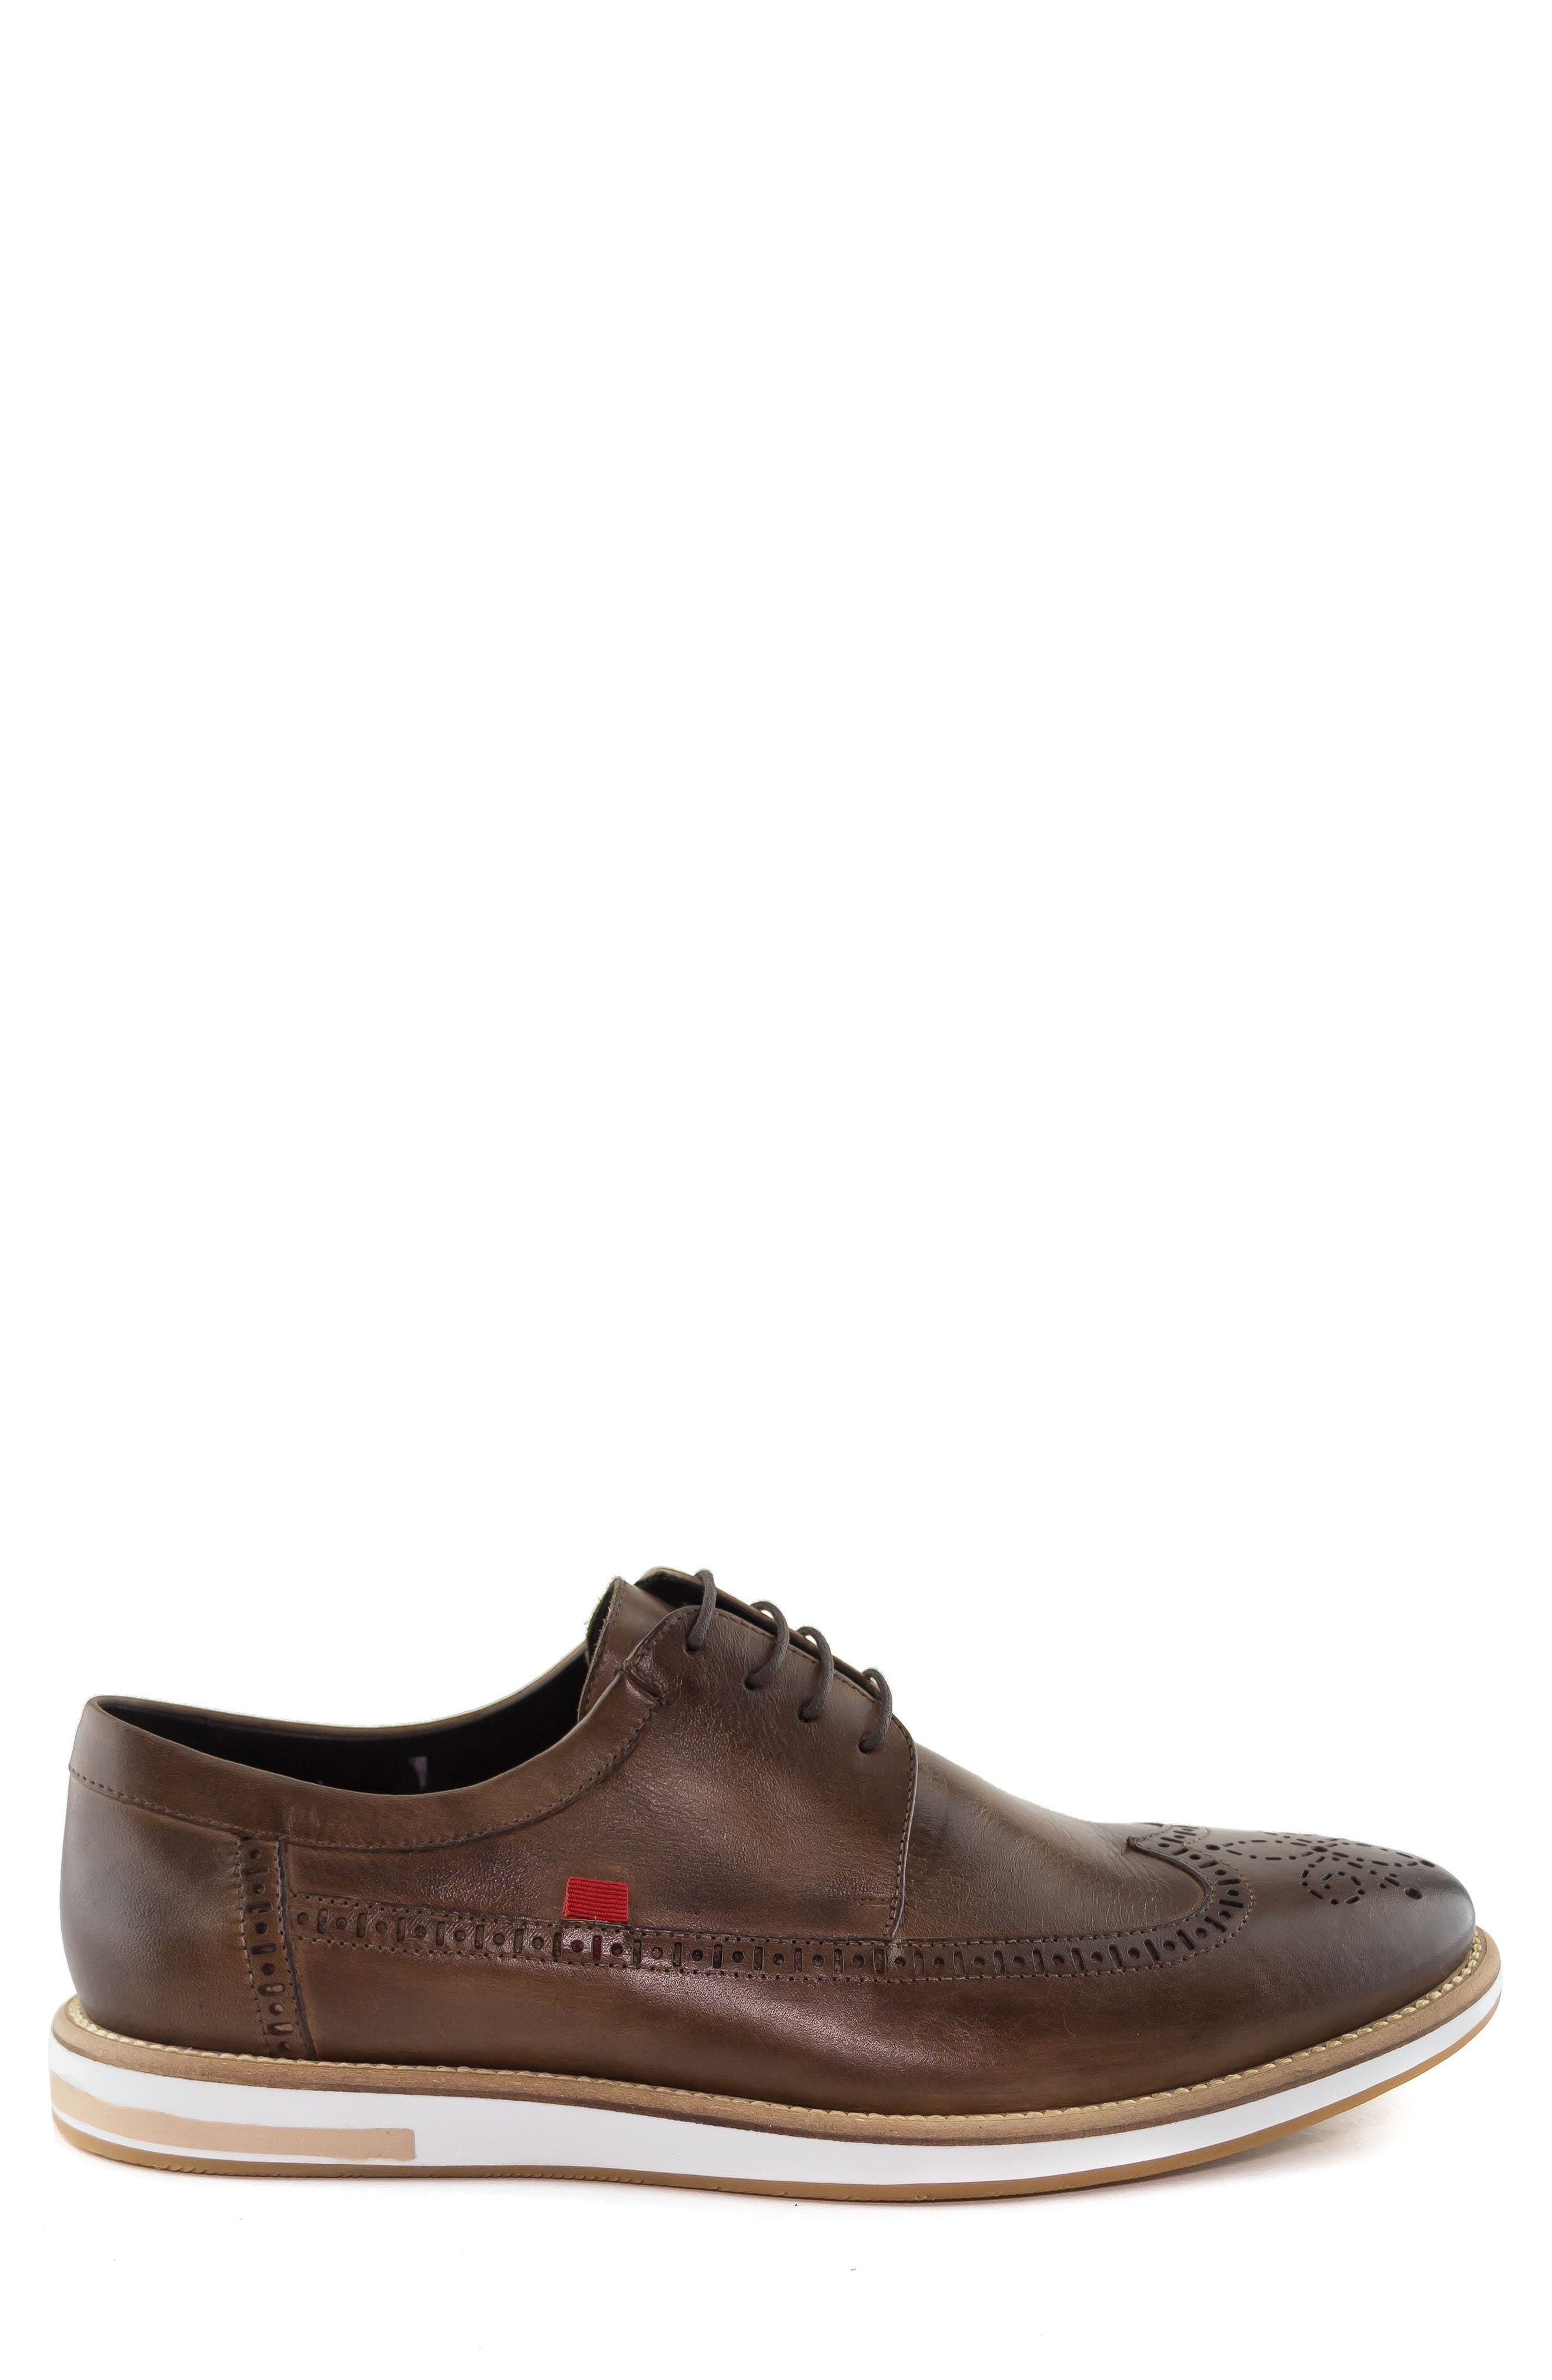 Marc Joseph New Yrok NYC Wingtip,                             Alternate thumbnail 6, color,